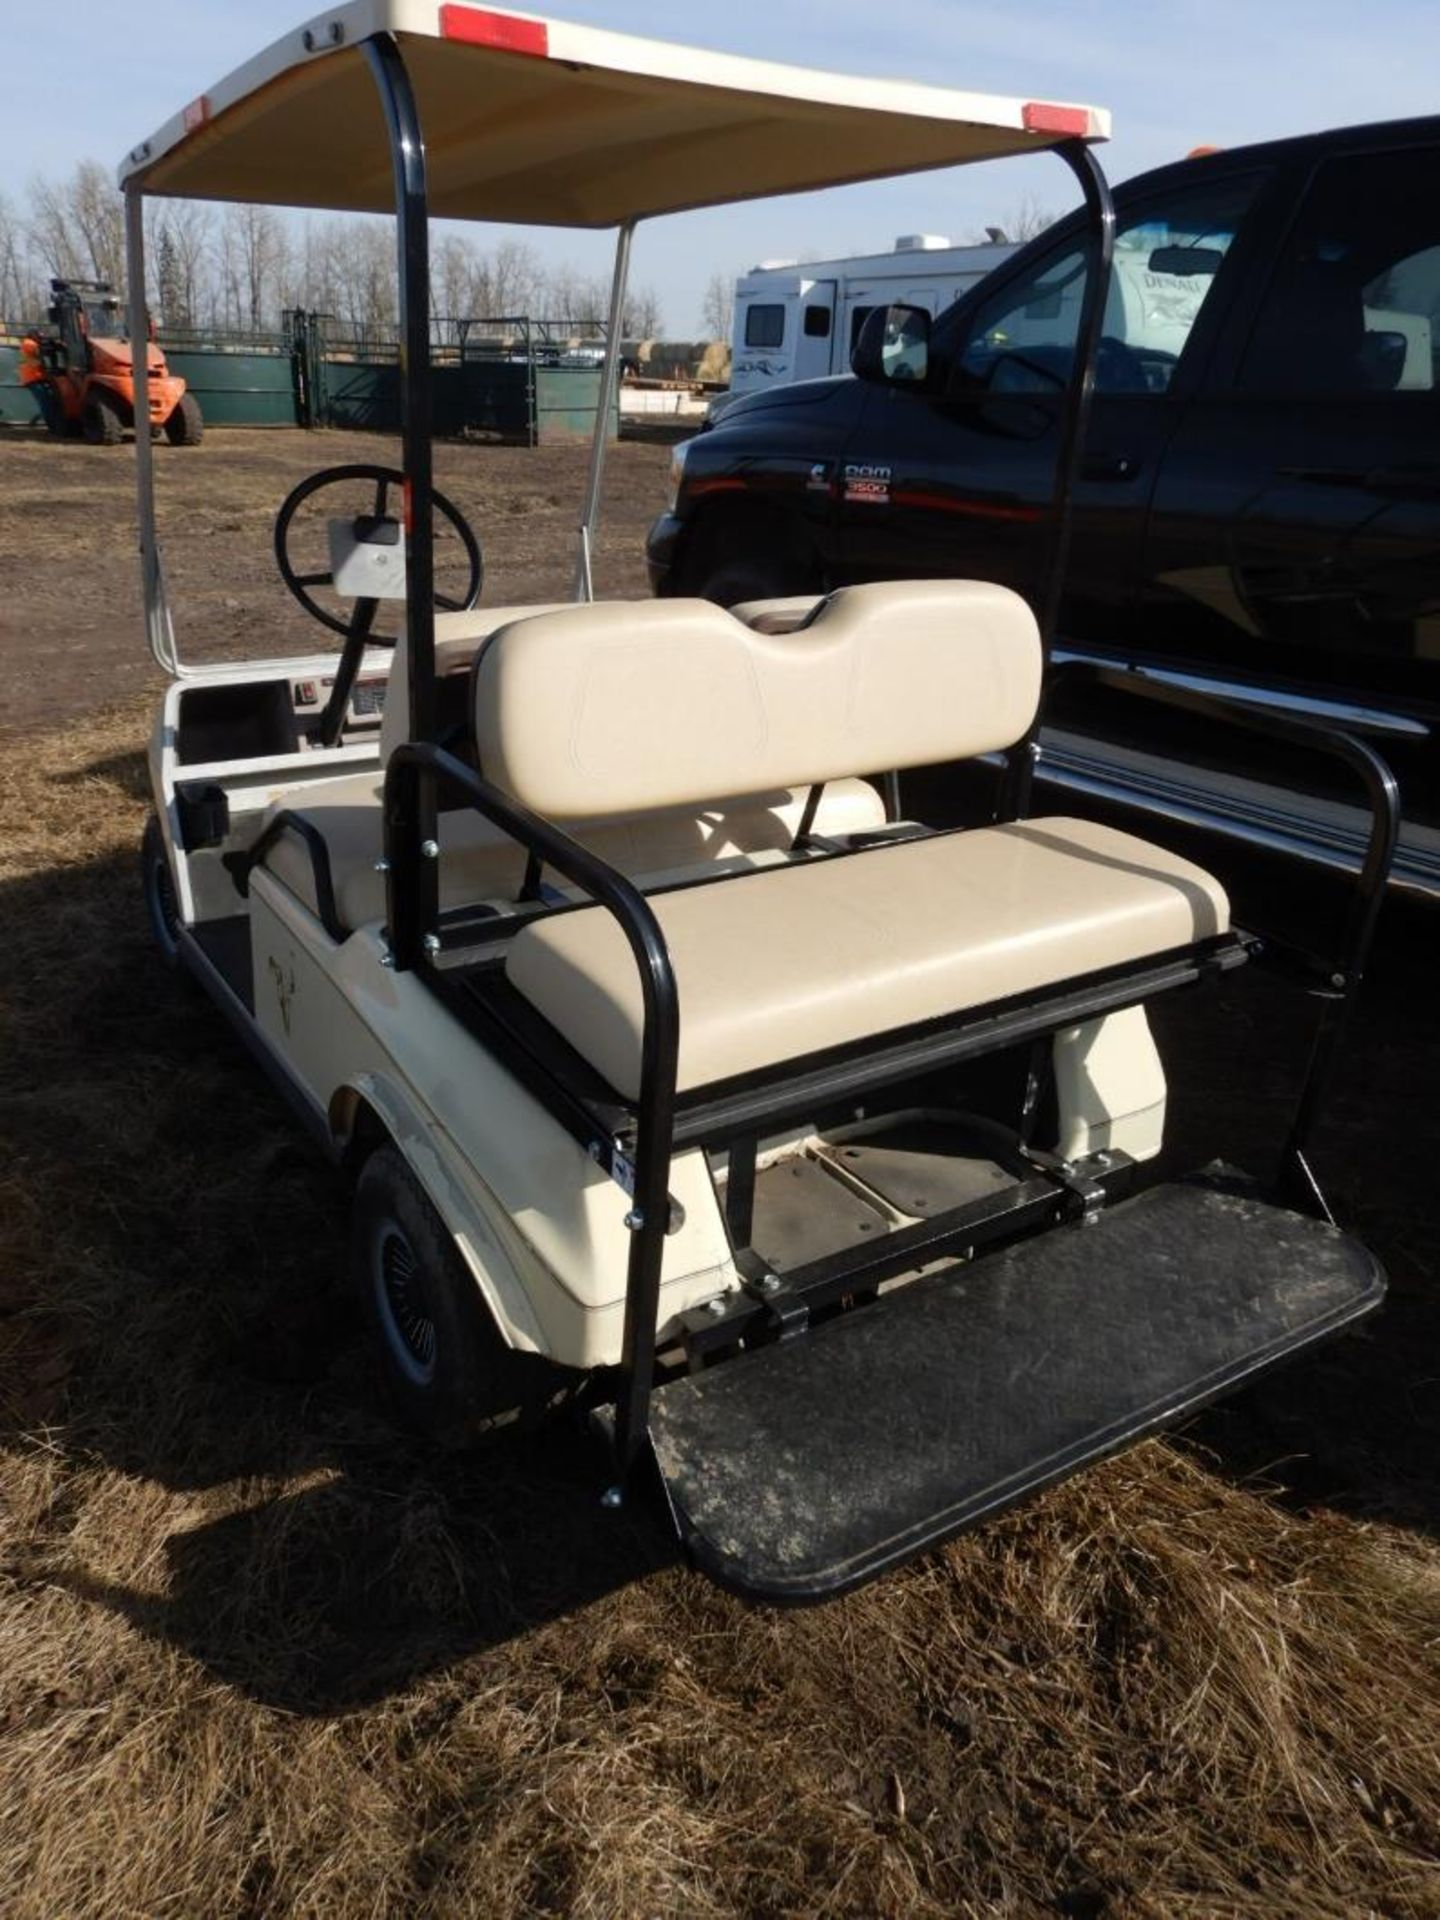 CLUB CAR GAS POWERED GOLF CART S/N AG9132254635 W/NEW BRAKES, BATTERY, REAR SEAT - Image 3 of 6